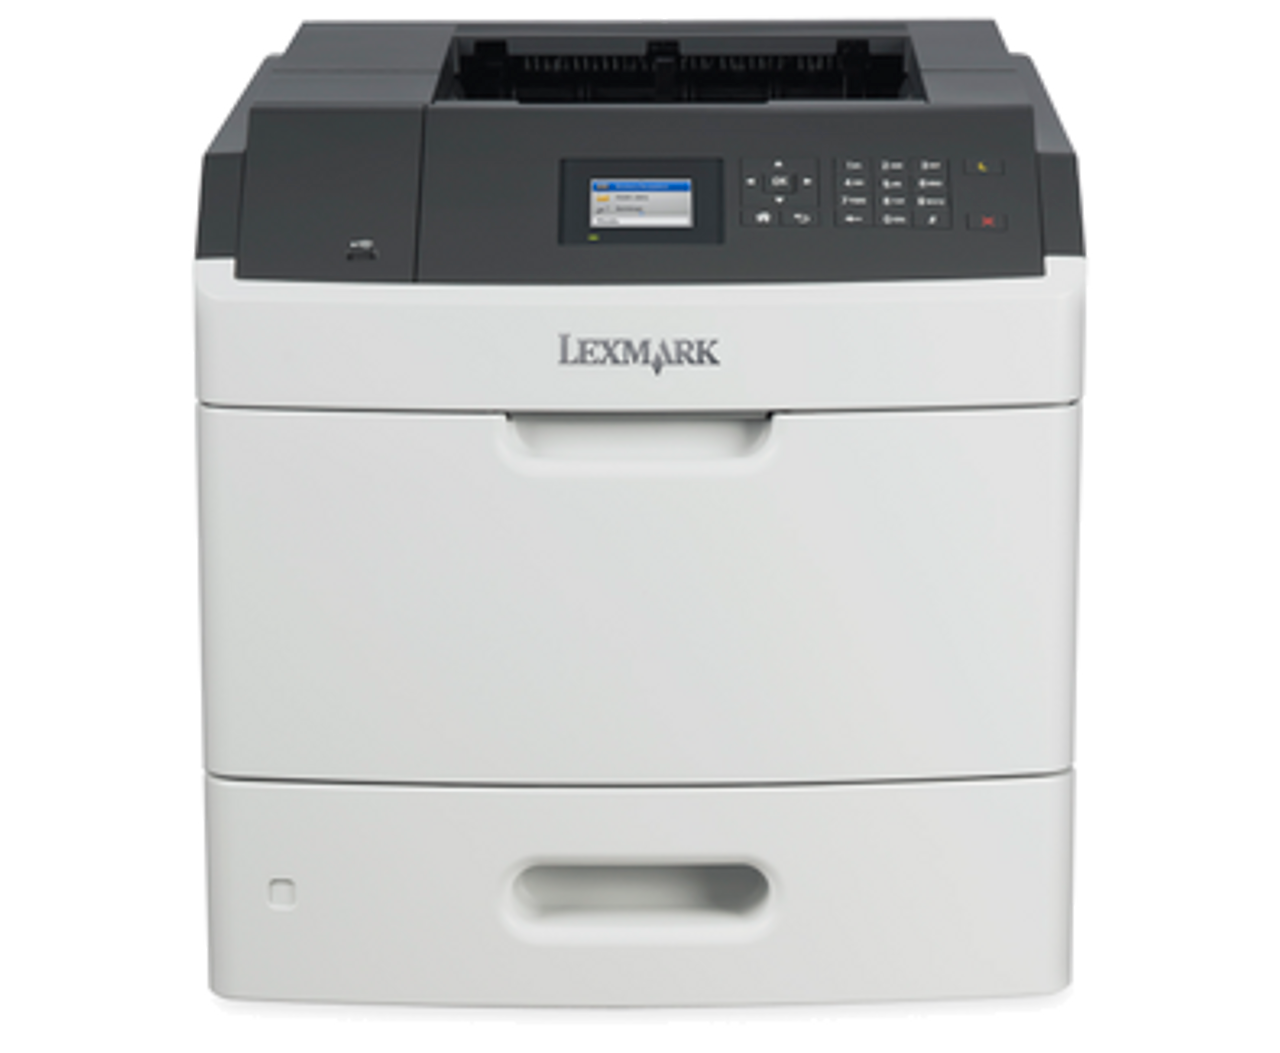 Lexmark MS810DN - 40G0110 - Lexmark Laser Printer for sale